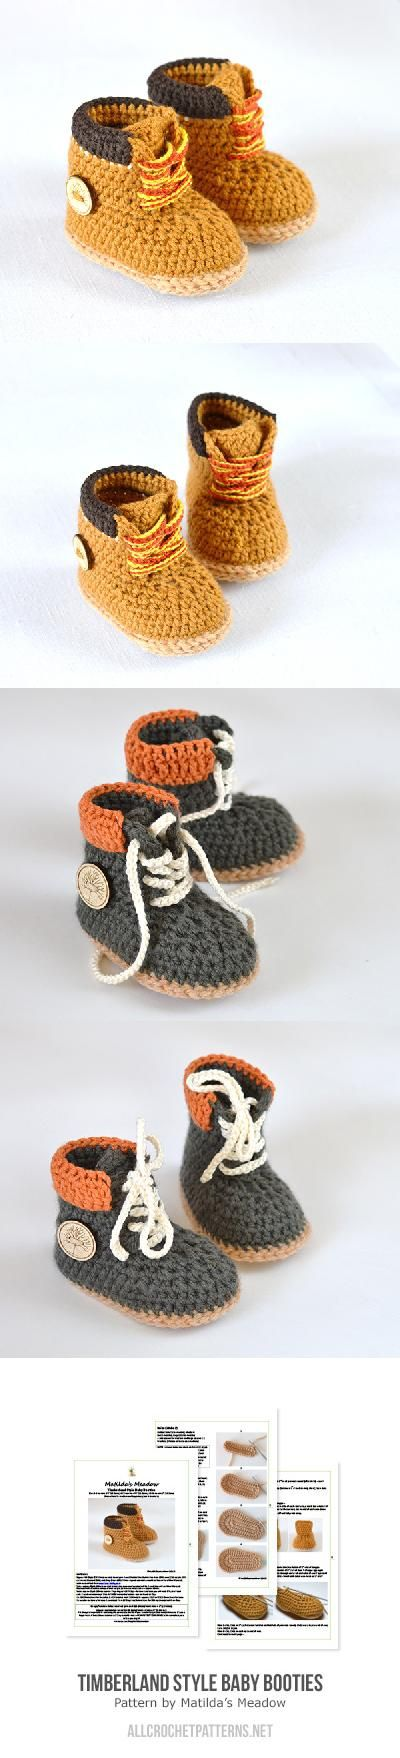 Timberland style baby booties crochet pattern by Matilda\'s Meadow ...